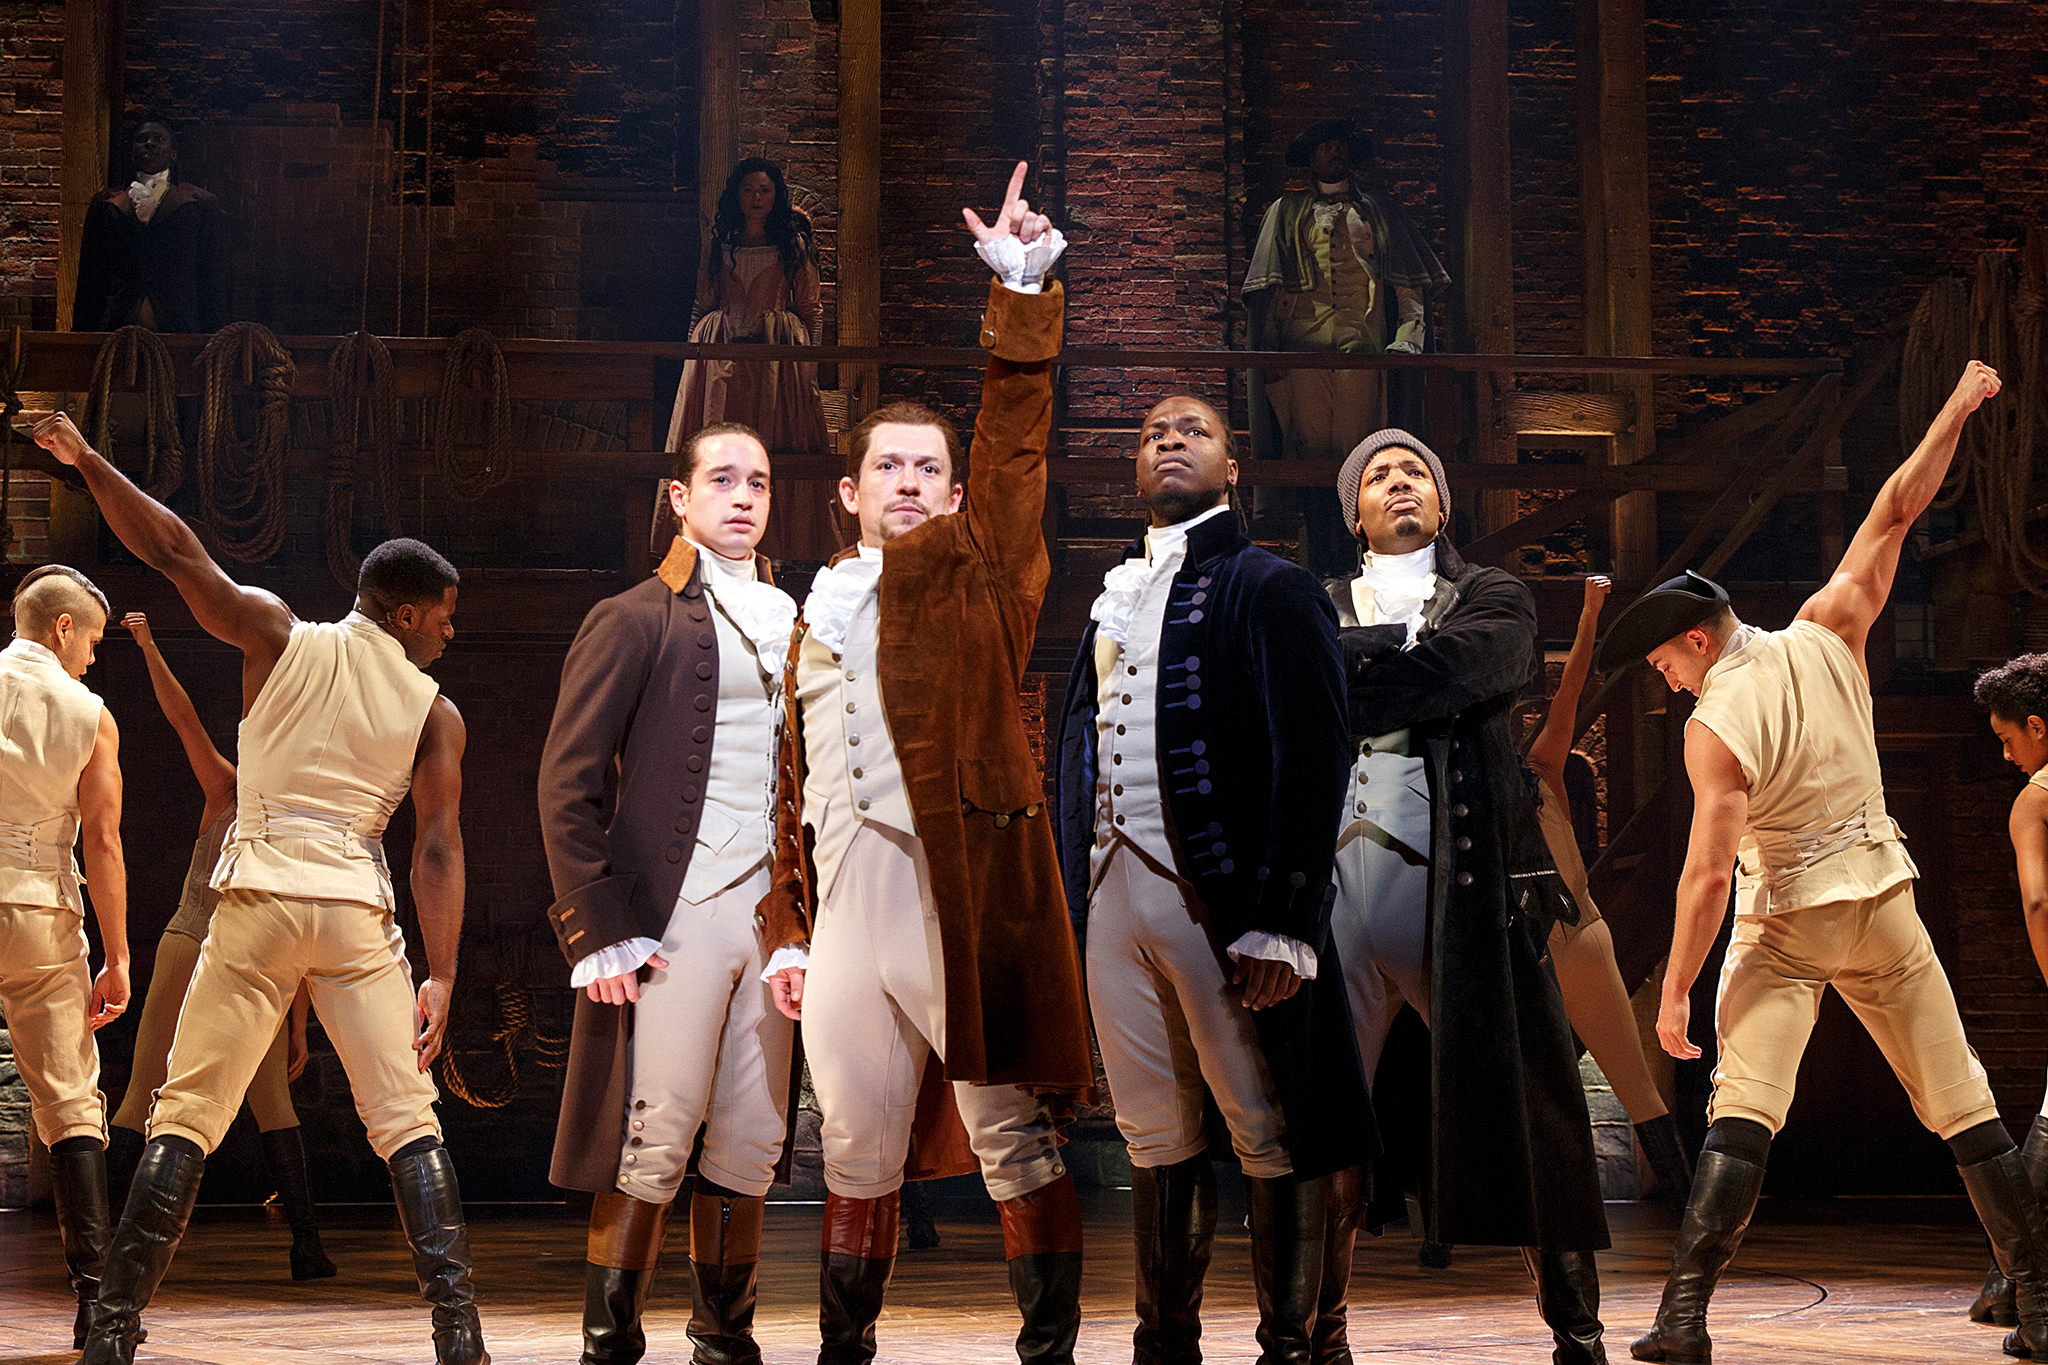 Five-star theater review: 'Hamilton' opens in Chicago